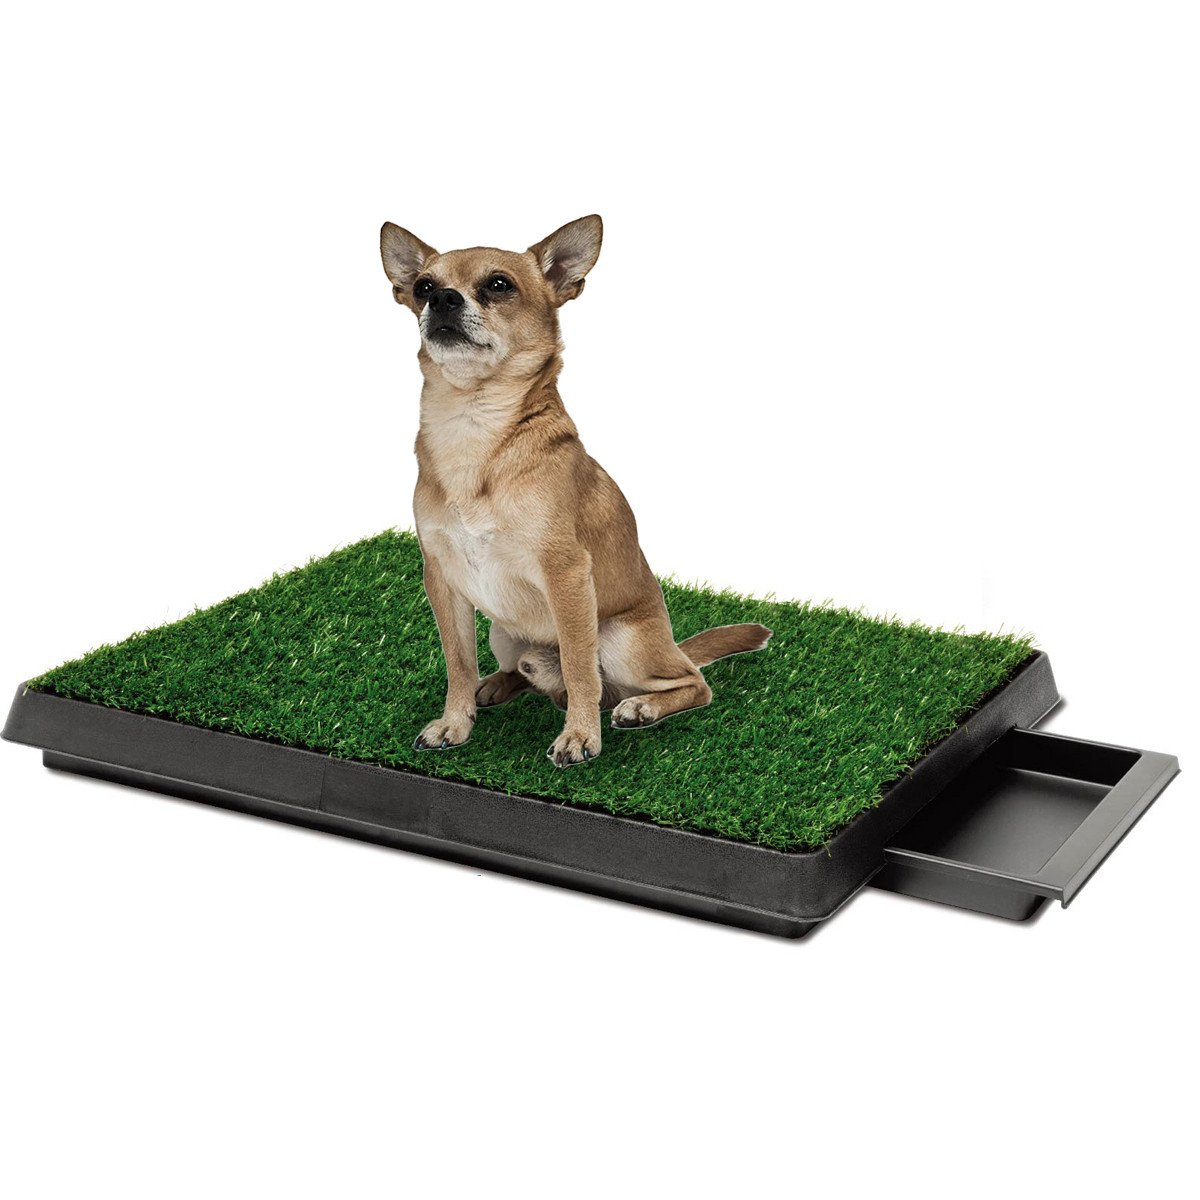 Indoor Pet Toilet Dog Grass Restroom Potty Training with Tray and ...